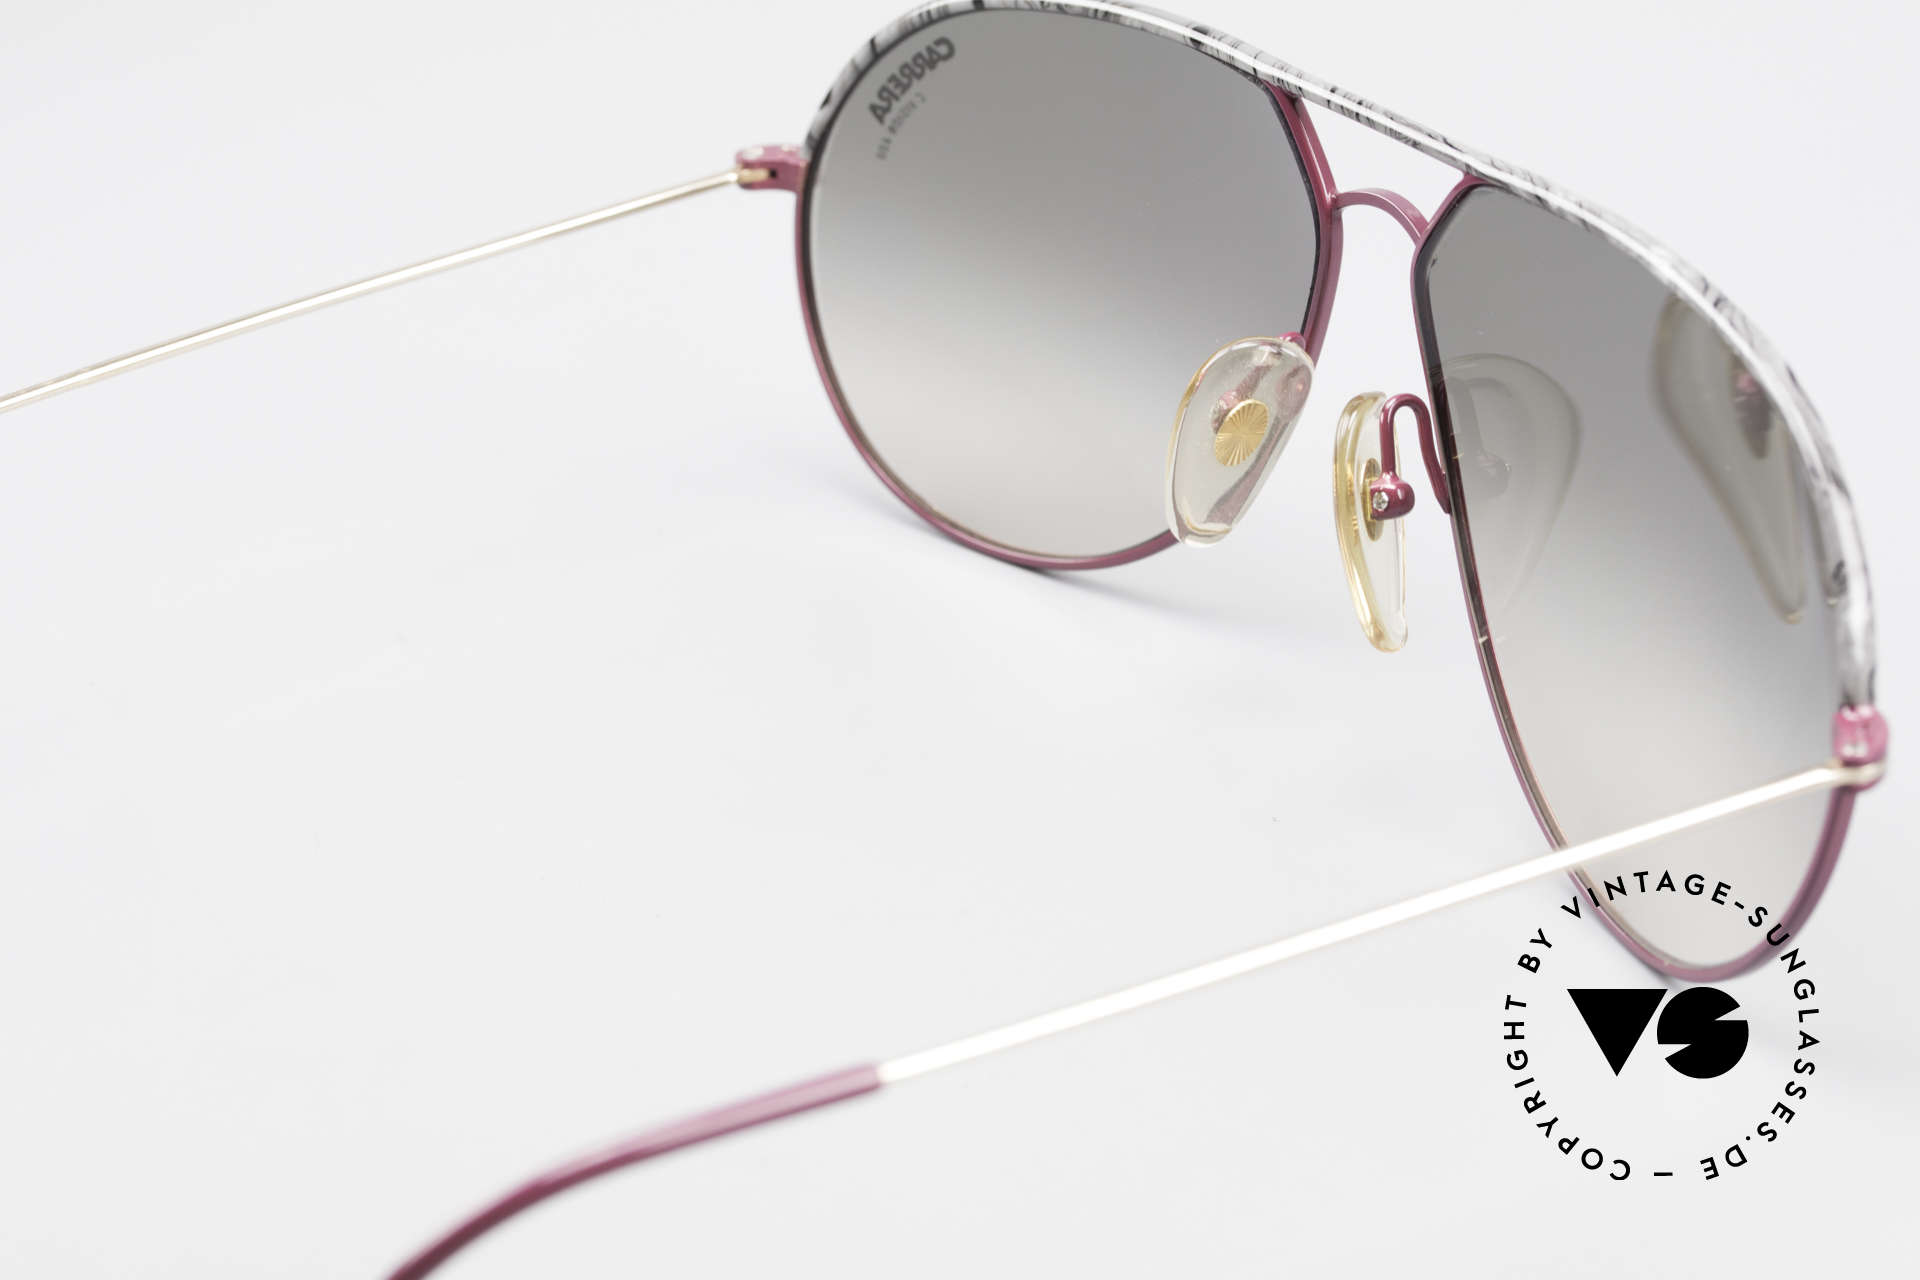 Carrera 5428 Rare Old Vintage 80's Shades, No RETRO, but a rare ORIGINAL from the late 1980s, Made for Men and Women